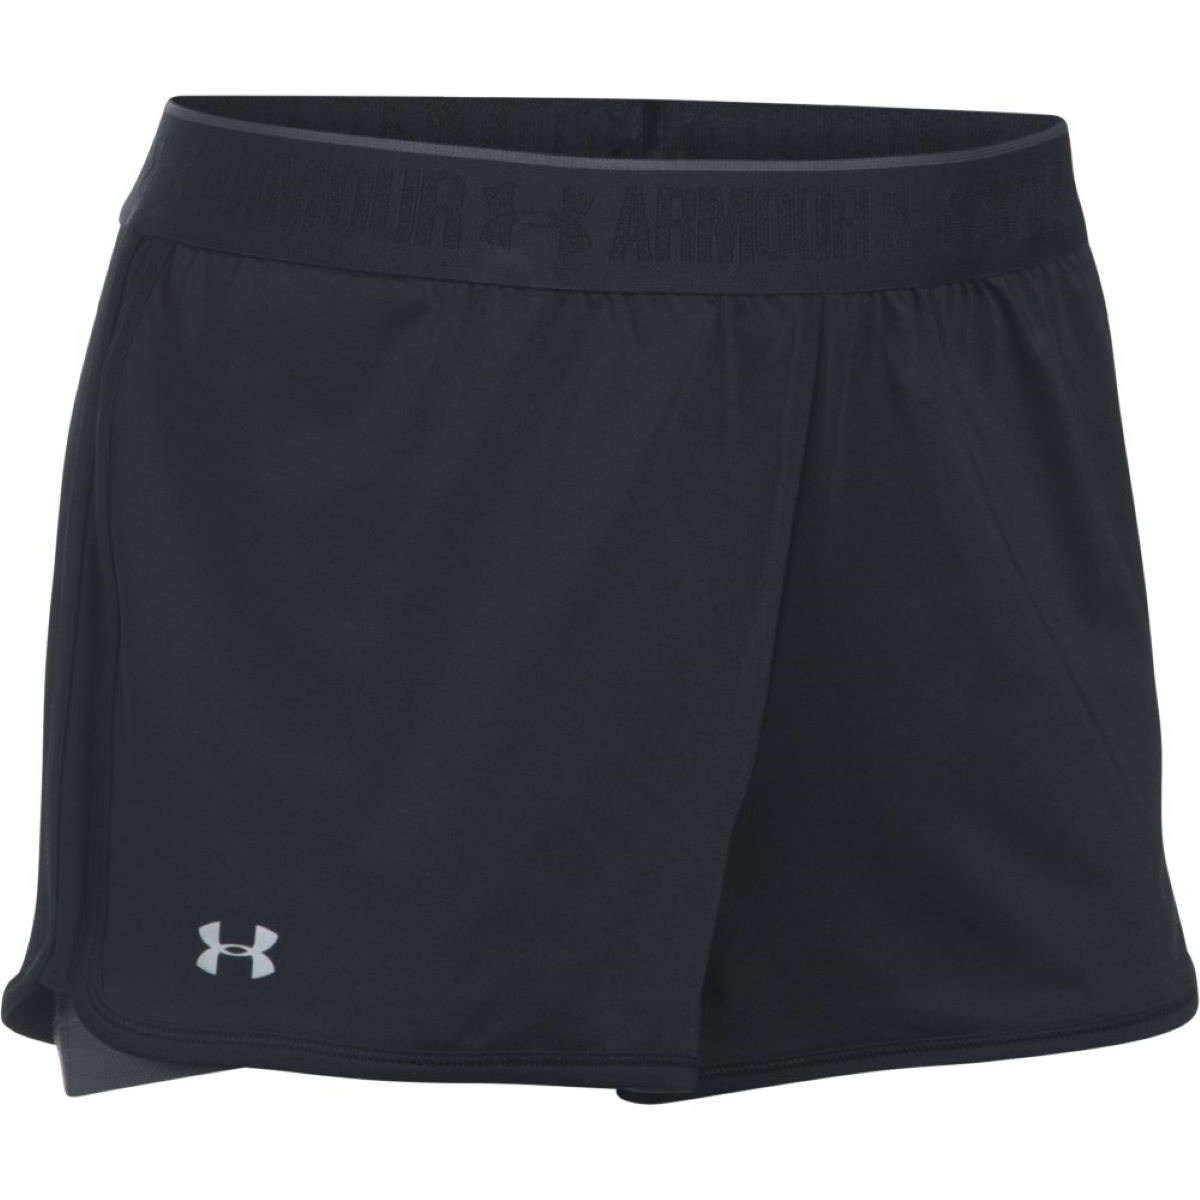 Short Femme Under Armour HeatGear Armour (2 en 1, PE17) - XS Black/Rhino Gray Shorts de running